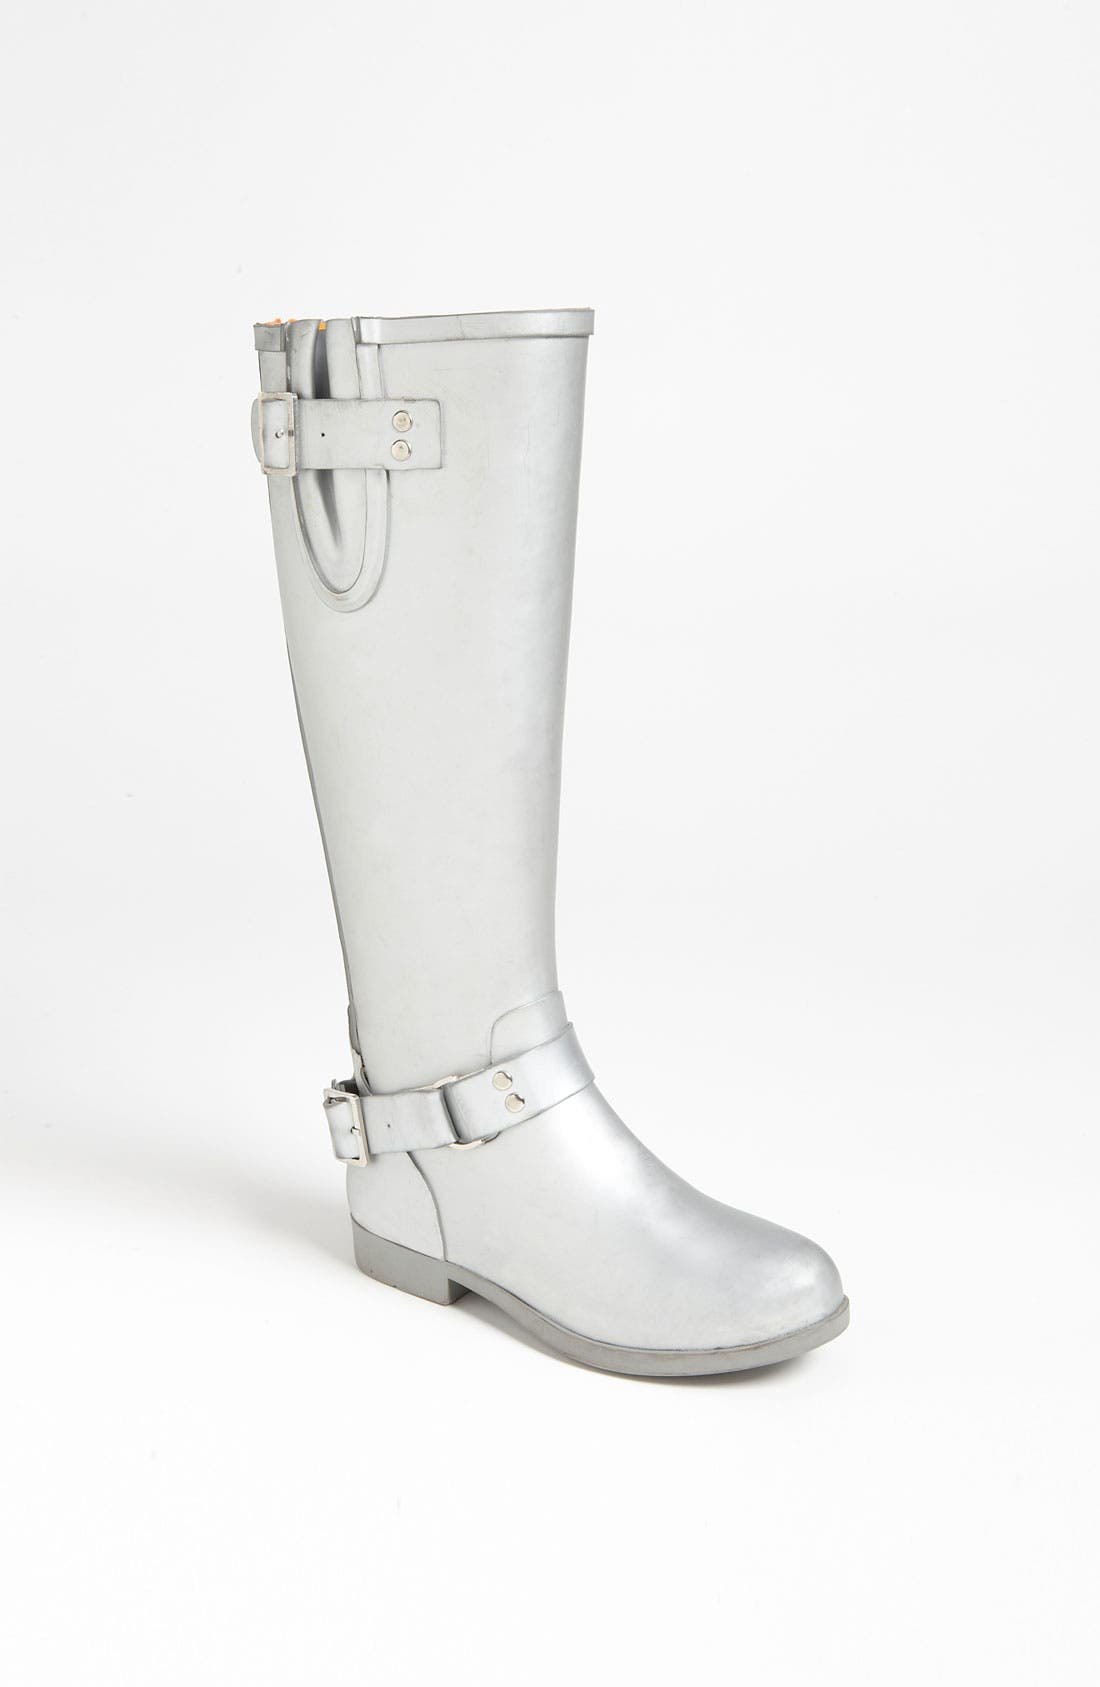 Alternate Image 1 Selected - Steve Madden 'Tsunamii' Contrast Zip Rain Boot (Women)